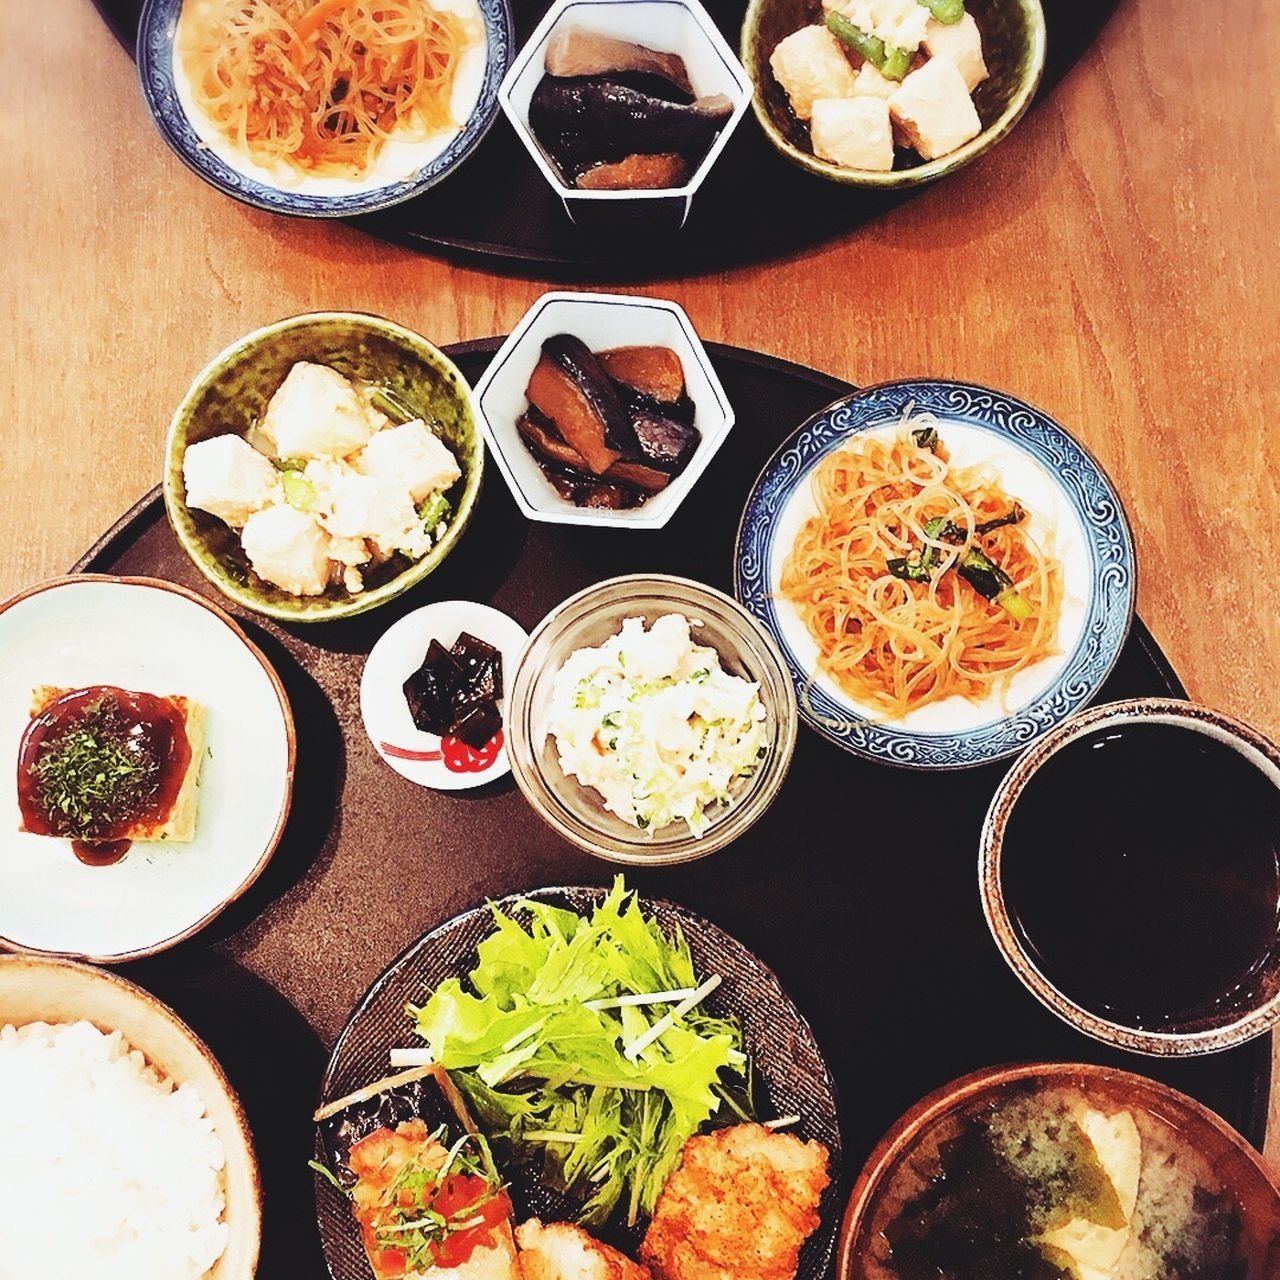 food and drink, table, food, plate, ready-to-eat, bowl, variation, indoors, healthy eating, serving size, high angle view, freshness, salad, no people, spring roll, day